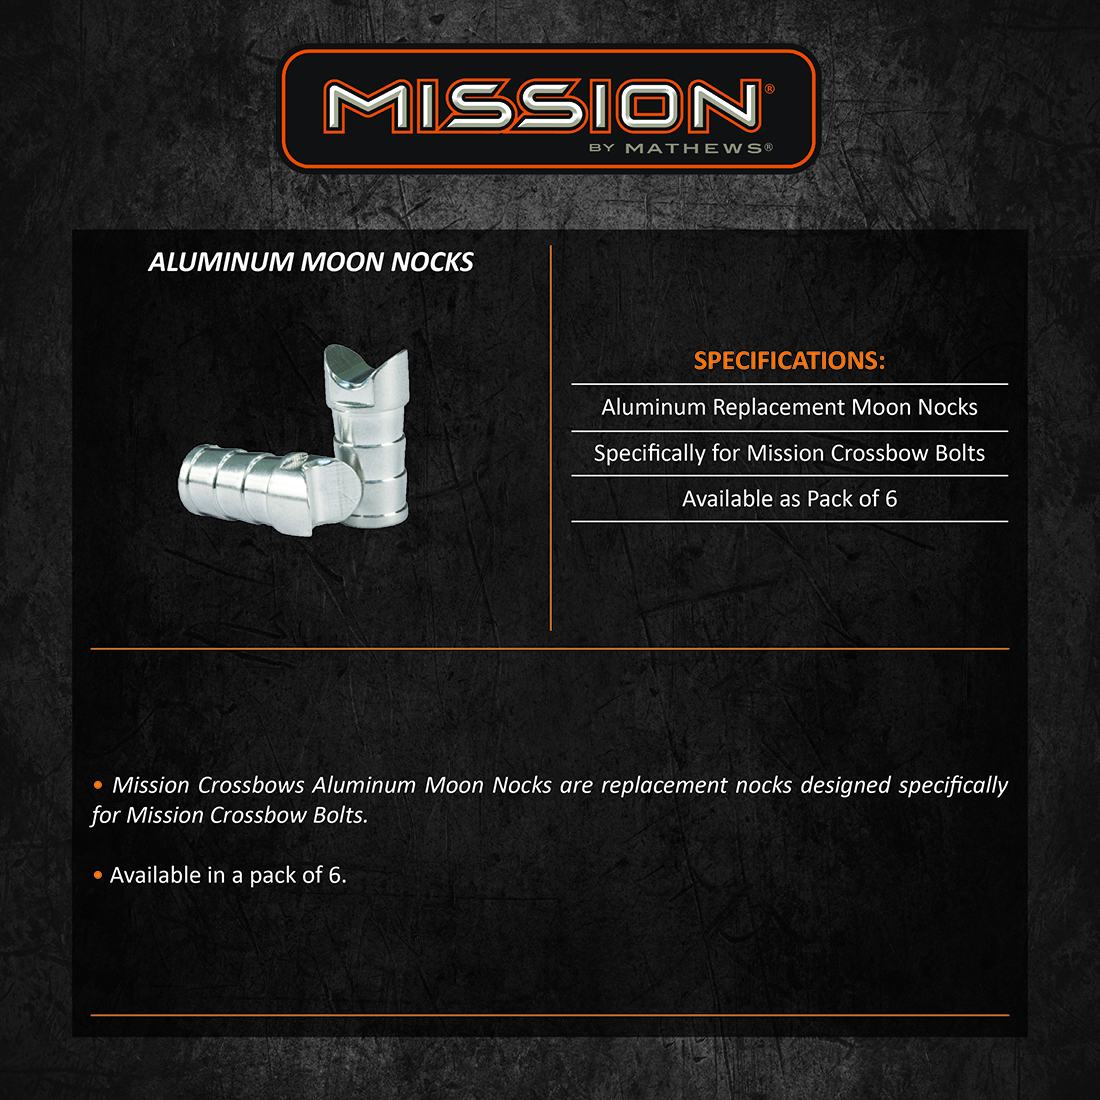 Mission_Aluminum_Moon_Nocks_Product_Description